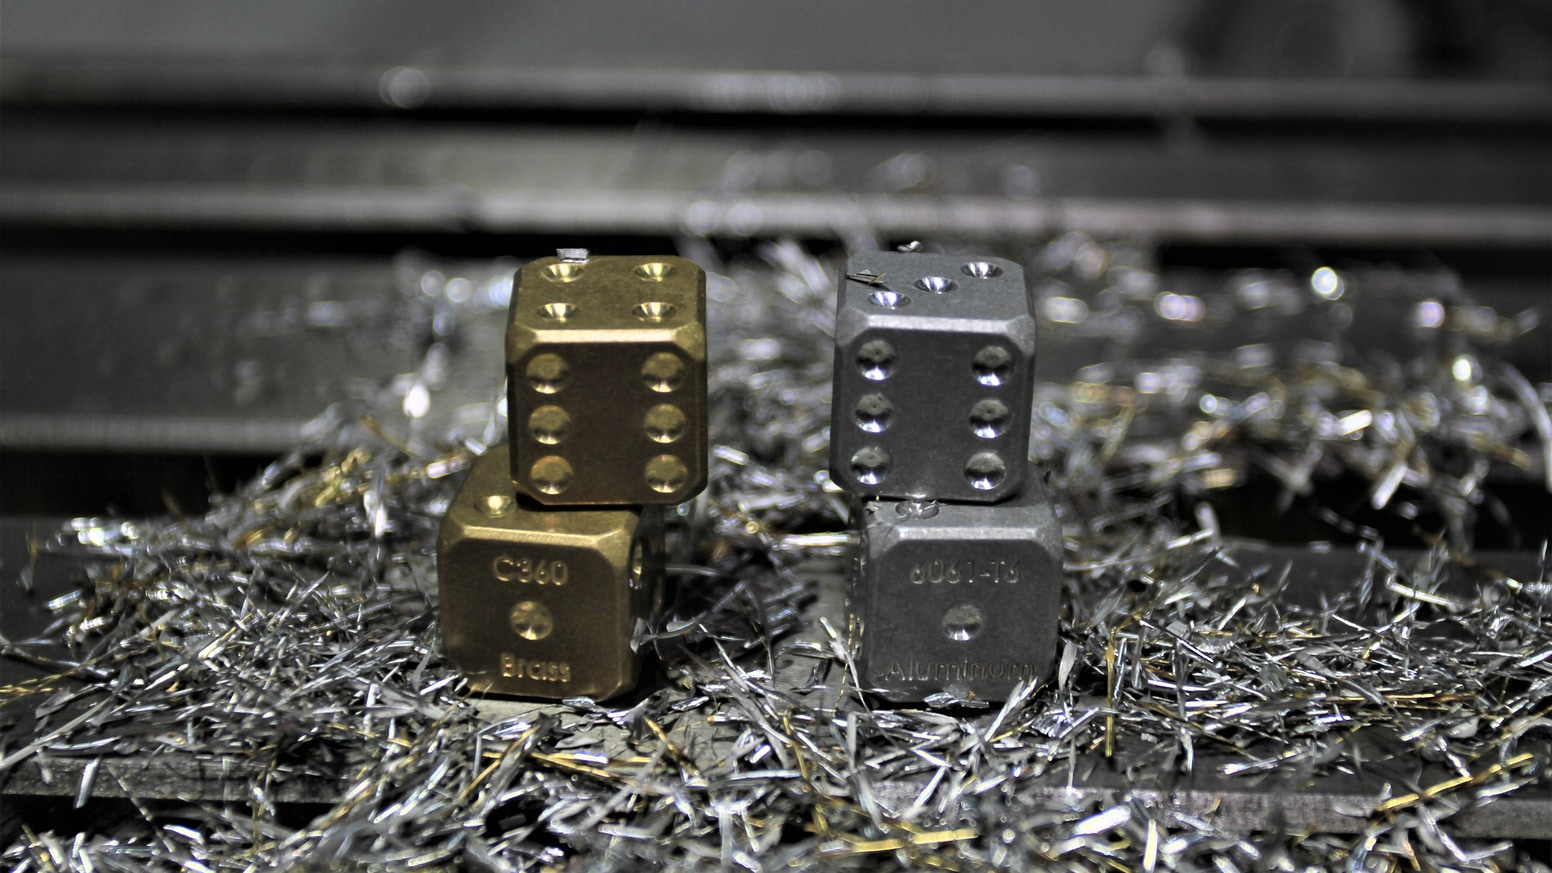 Dice that are precision CNC machined from metal alloys used in engineering